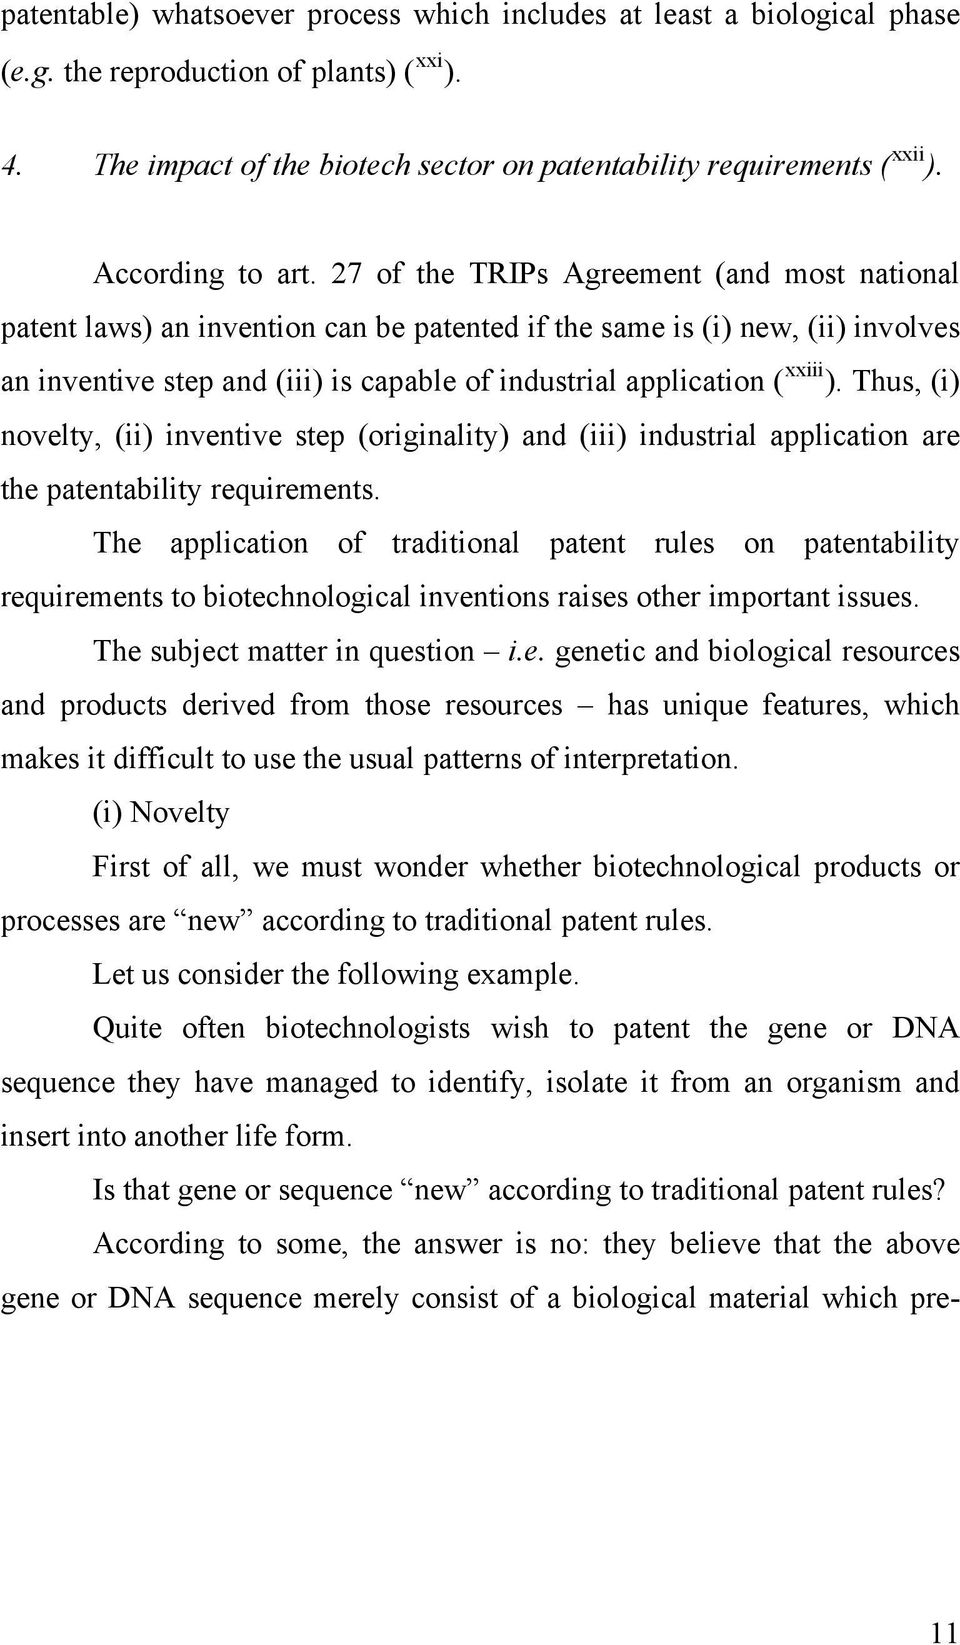 27 of the TRIPs Agreement (and most national patent laws) an invention can be patented if the same is (i) new, (ii) involves an inventive step and (iii) is capable of industrial application ( xxiii ).